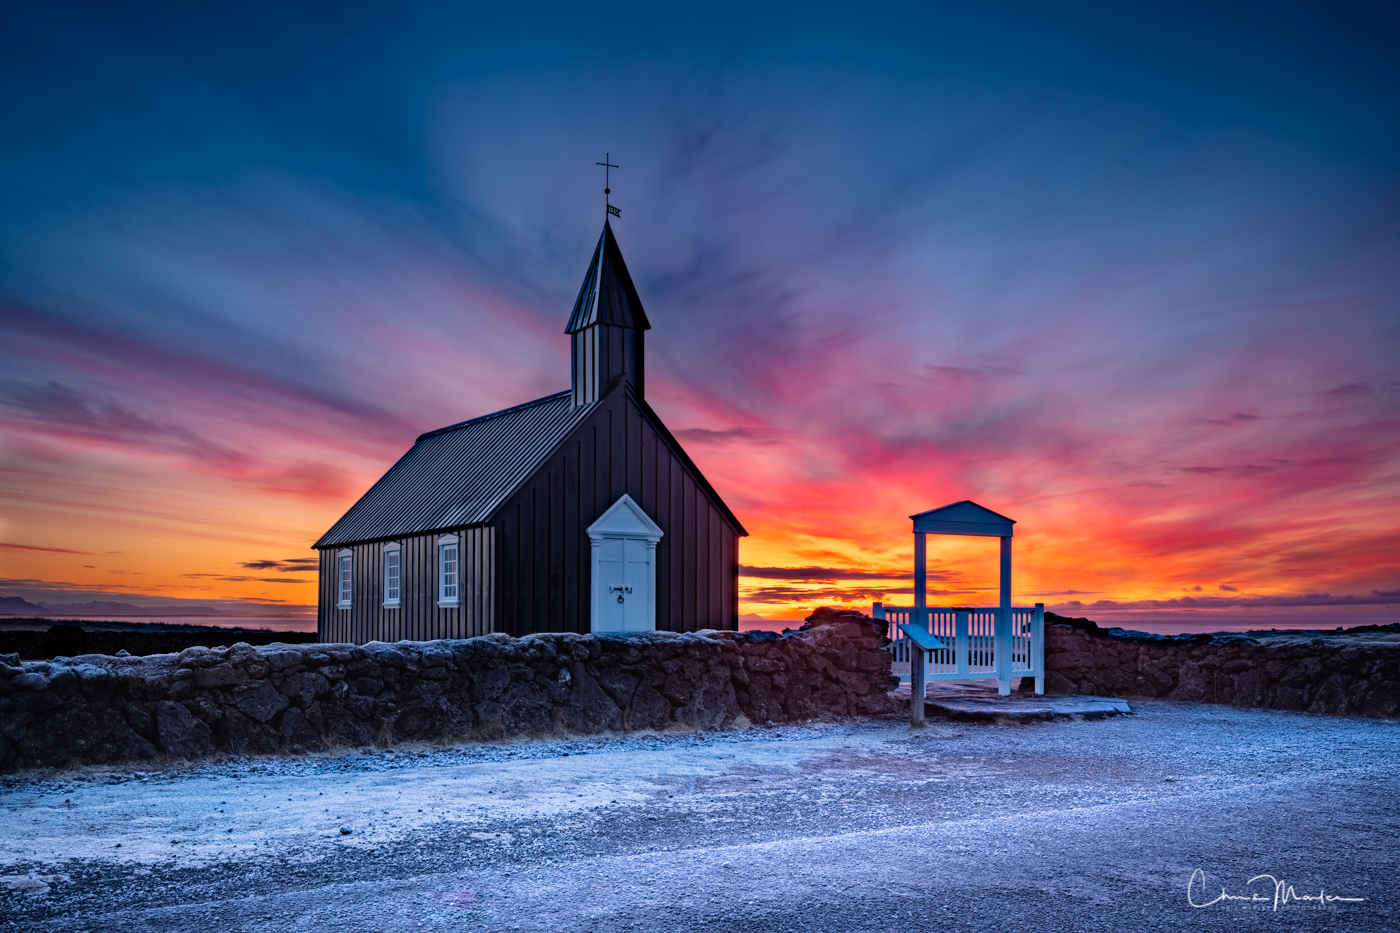 morning glory, Iceland, Snæfellsnes Peninsula, Budir Church, black church Iceland, photo